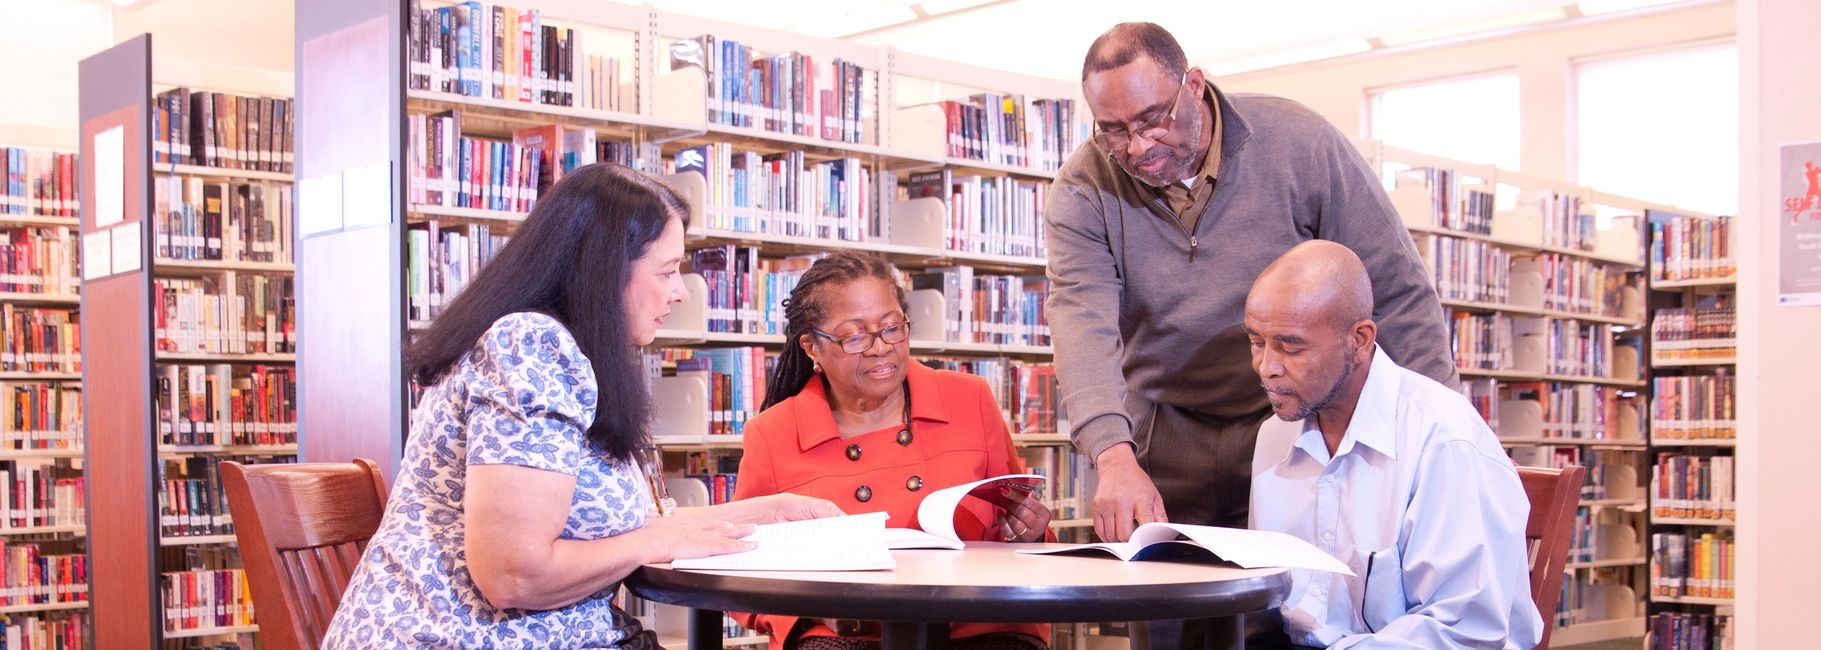 One adult teacher three adults sitting at a table in the library